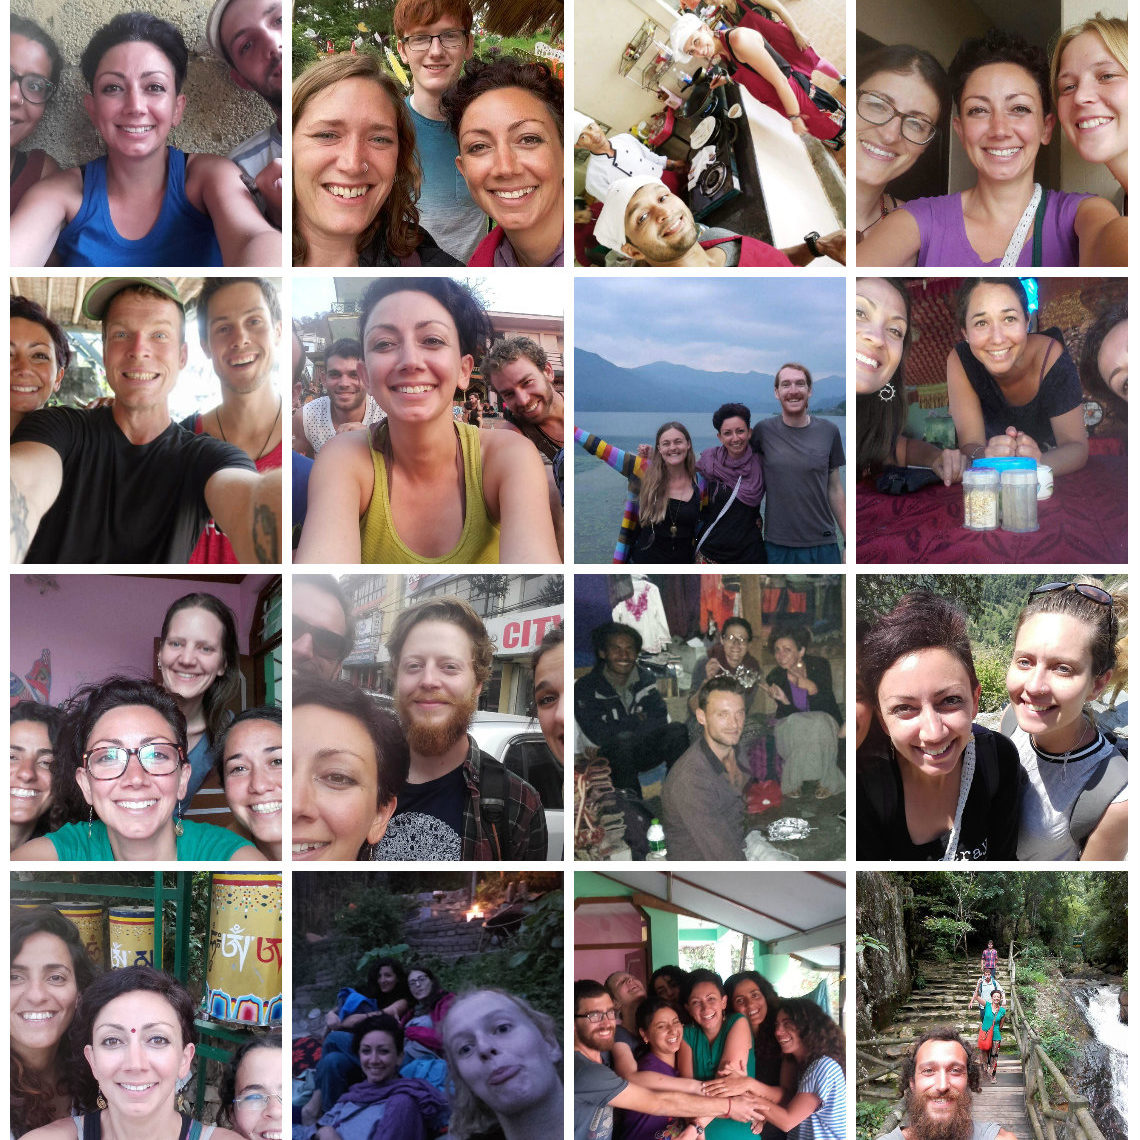 Whenever you're scared of travelling solo - please, take a look at all the happy faces of us 'poor, lonely, scared' solo travellers, out in this horrid, cruel world A